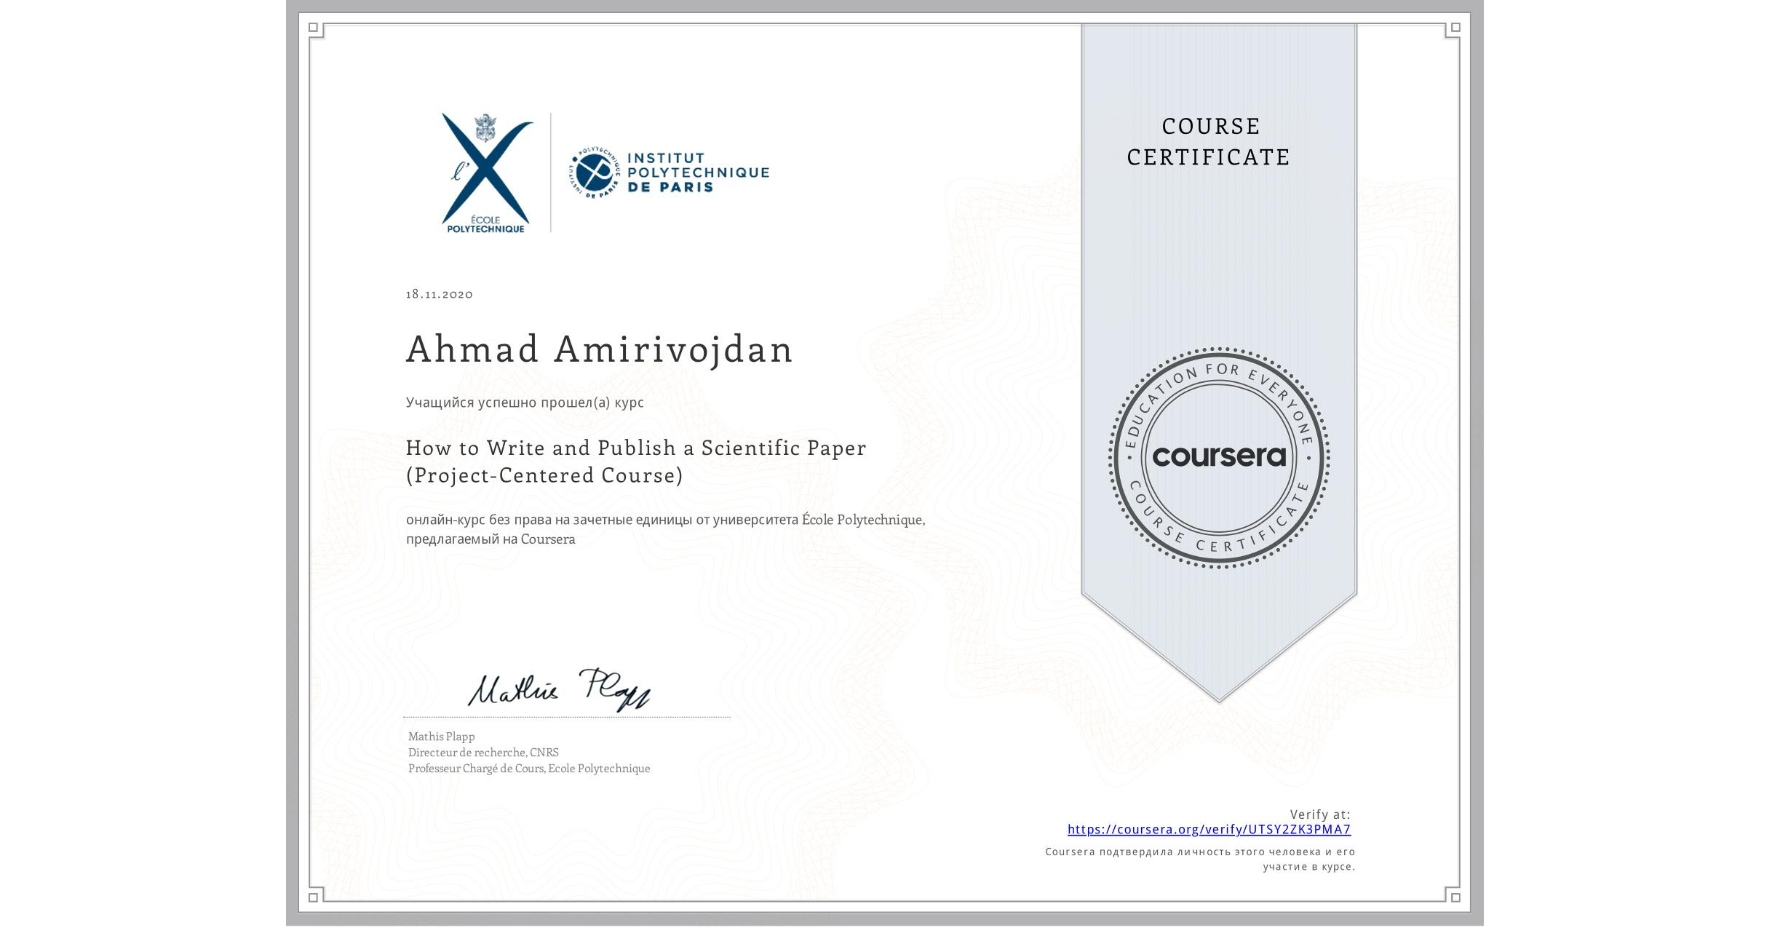 View certificate for Ahmad Amirivojdan, How to Write and Publish a Scientific Paper (Project-Centered Course), an online non-credit course authorized by École Polytechnique and offered through Coursera